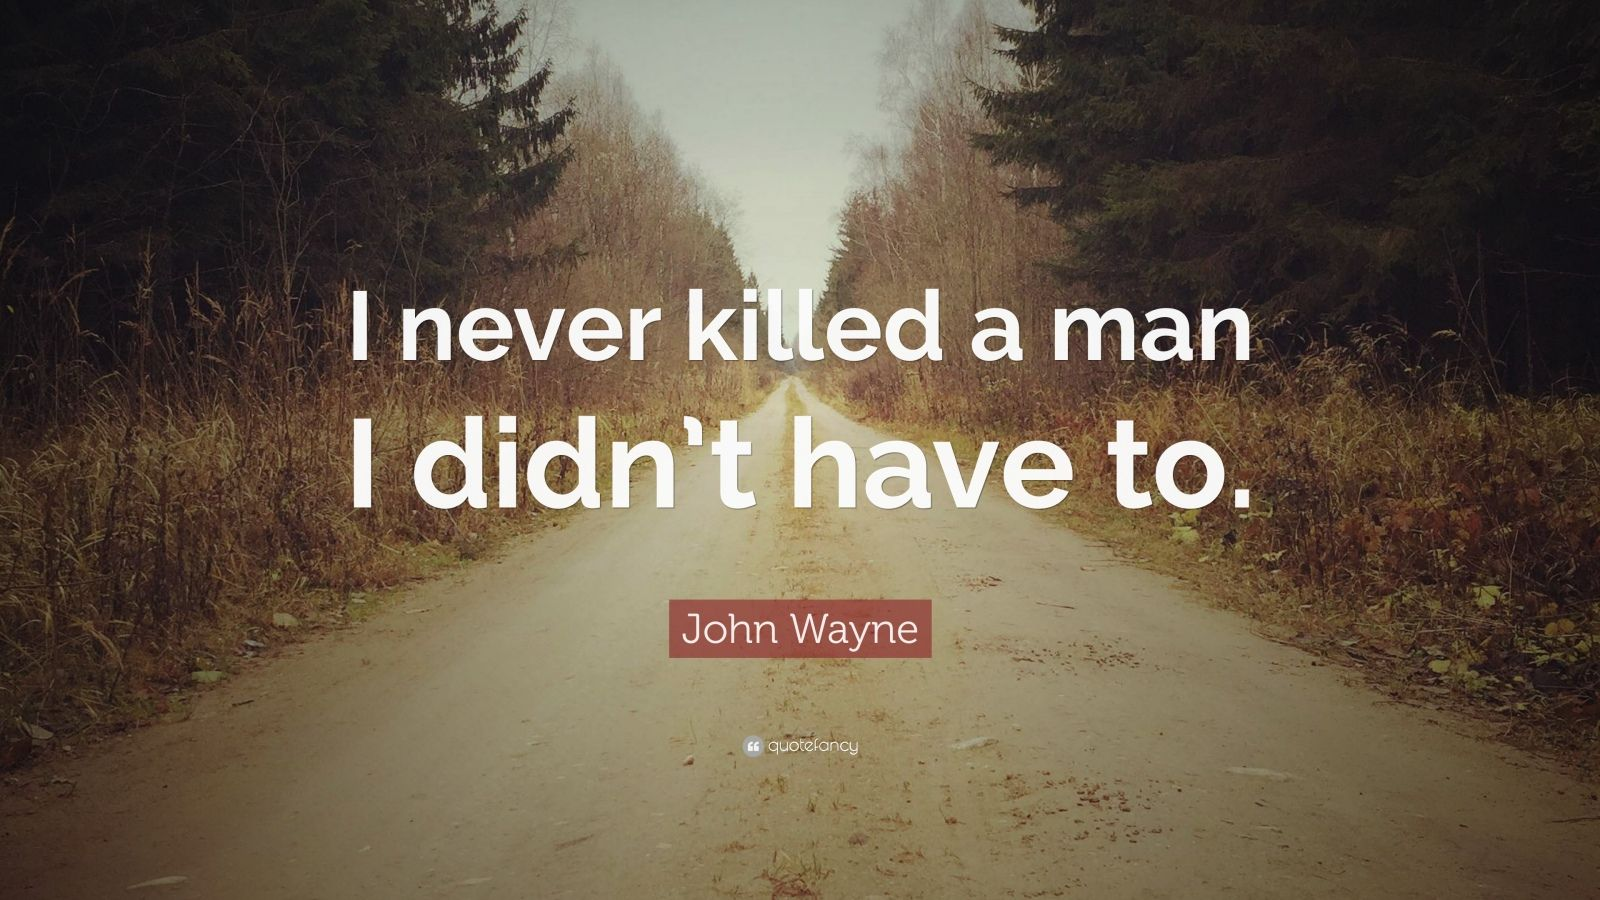 Pain Wallpaper Quotes John Wayne Quote I Never Killed A Man I Didn T Have To